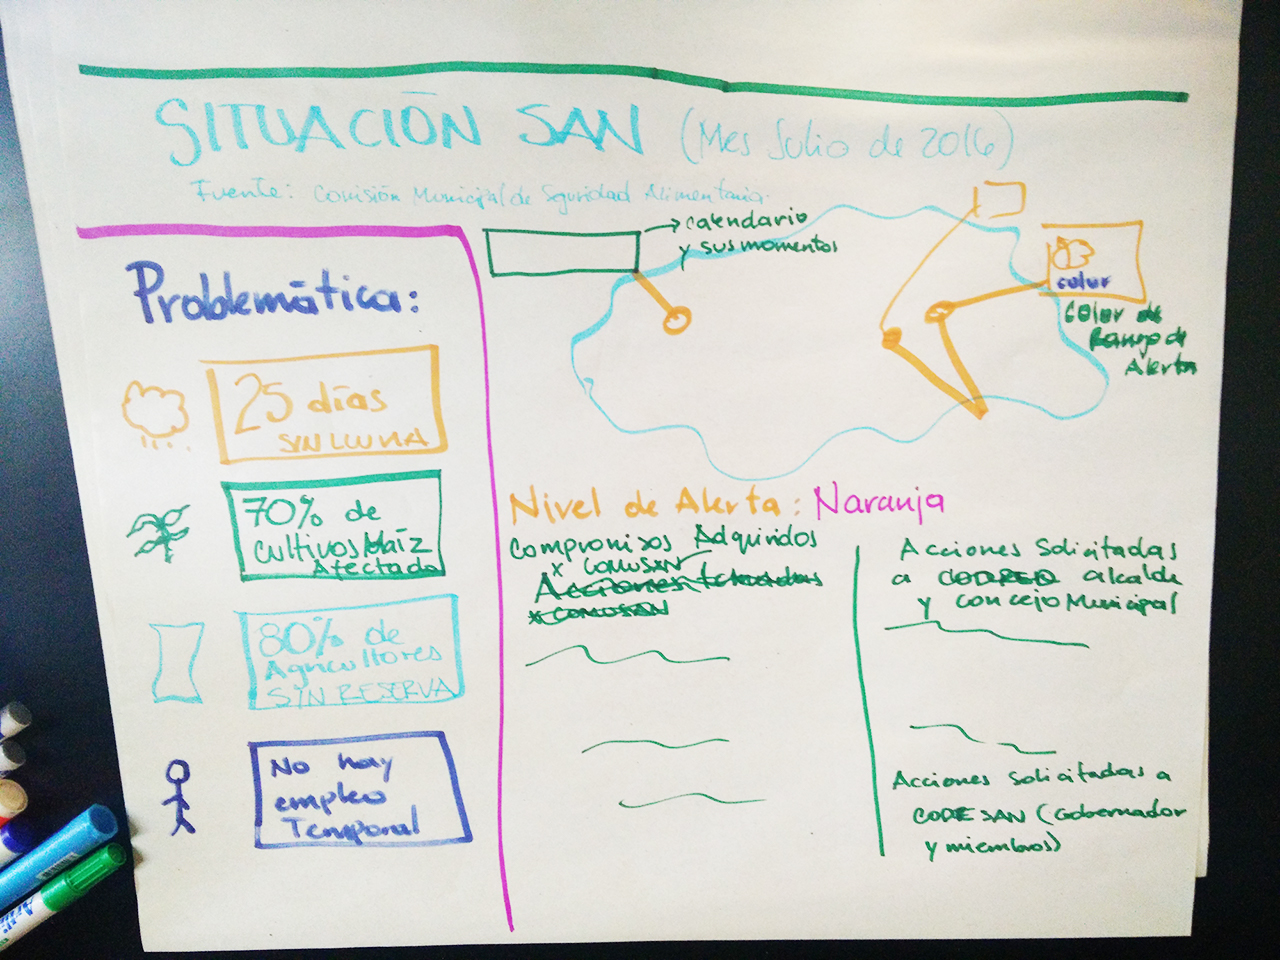 Group ideation  sketches during HCD session